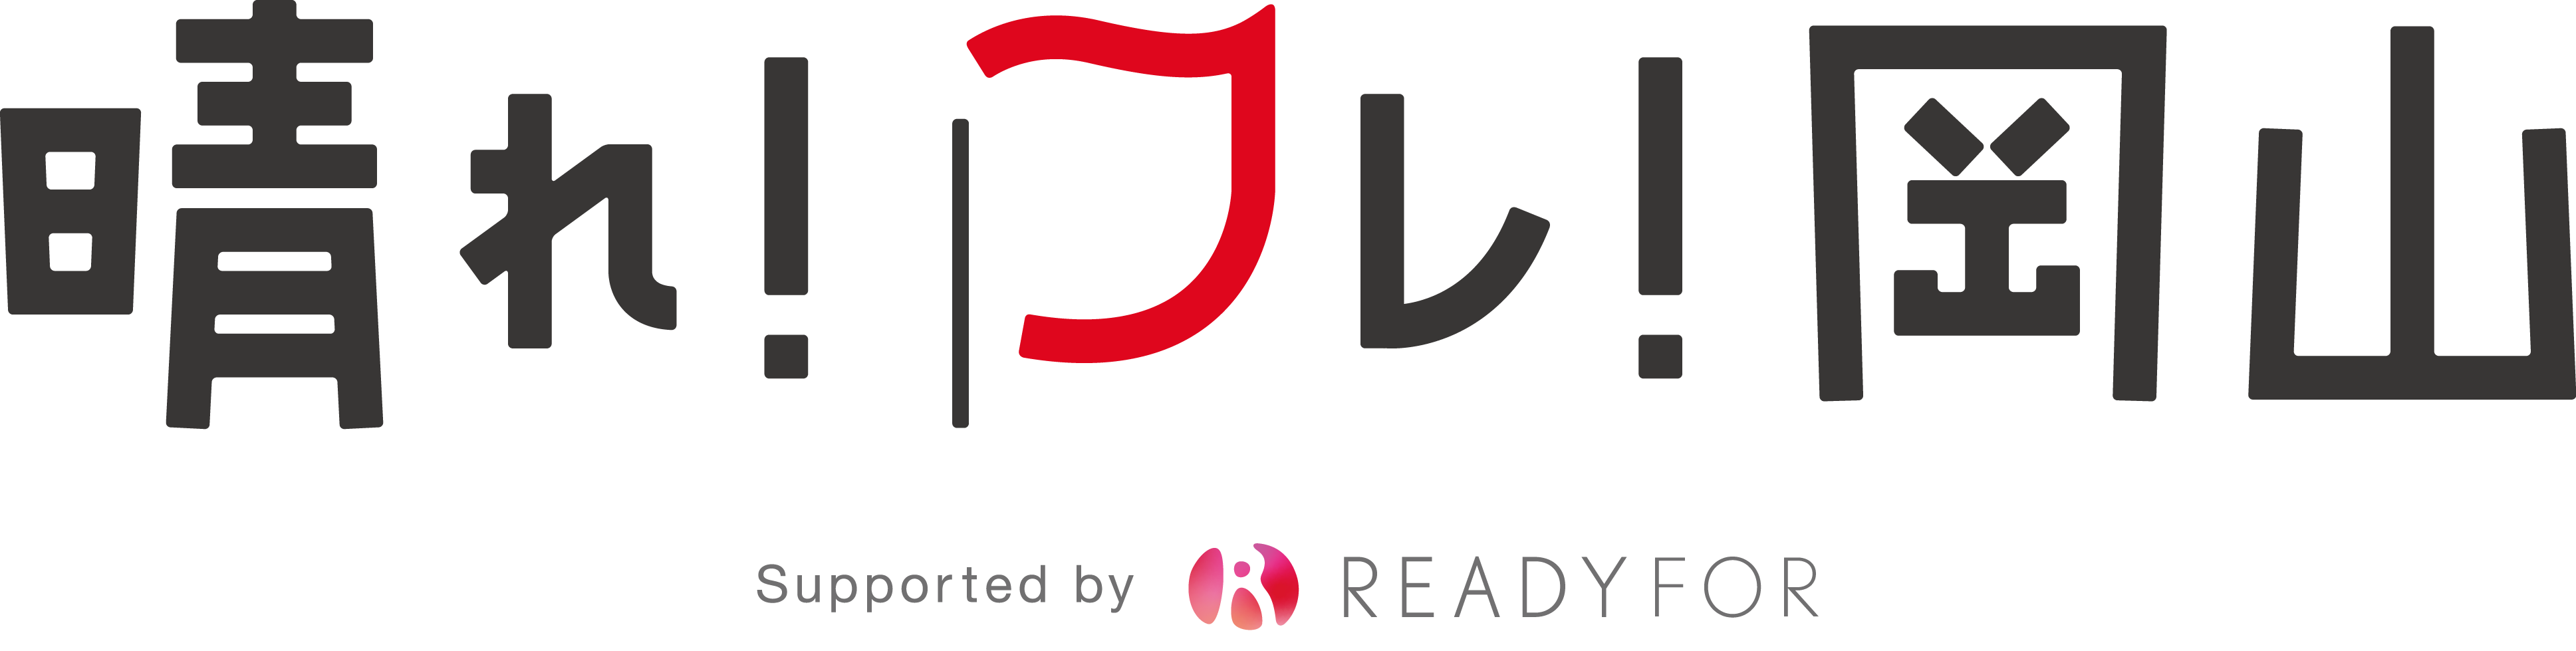 晴れフレ岡山 −Supported by Readyfor